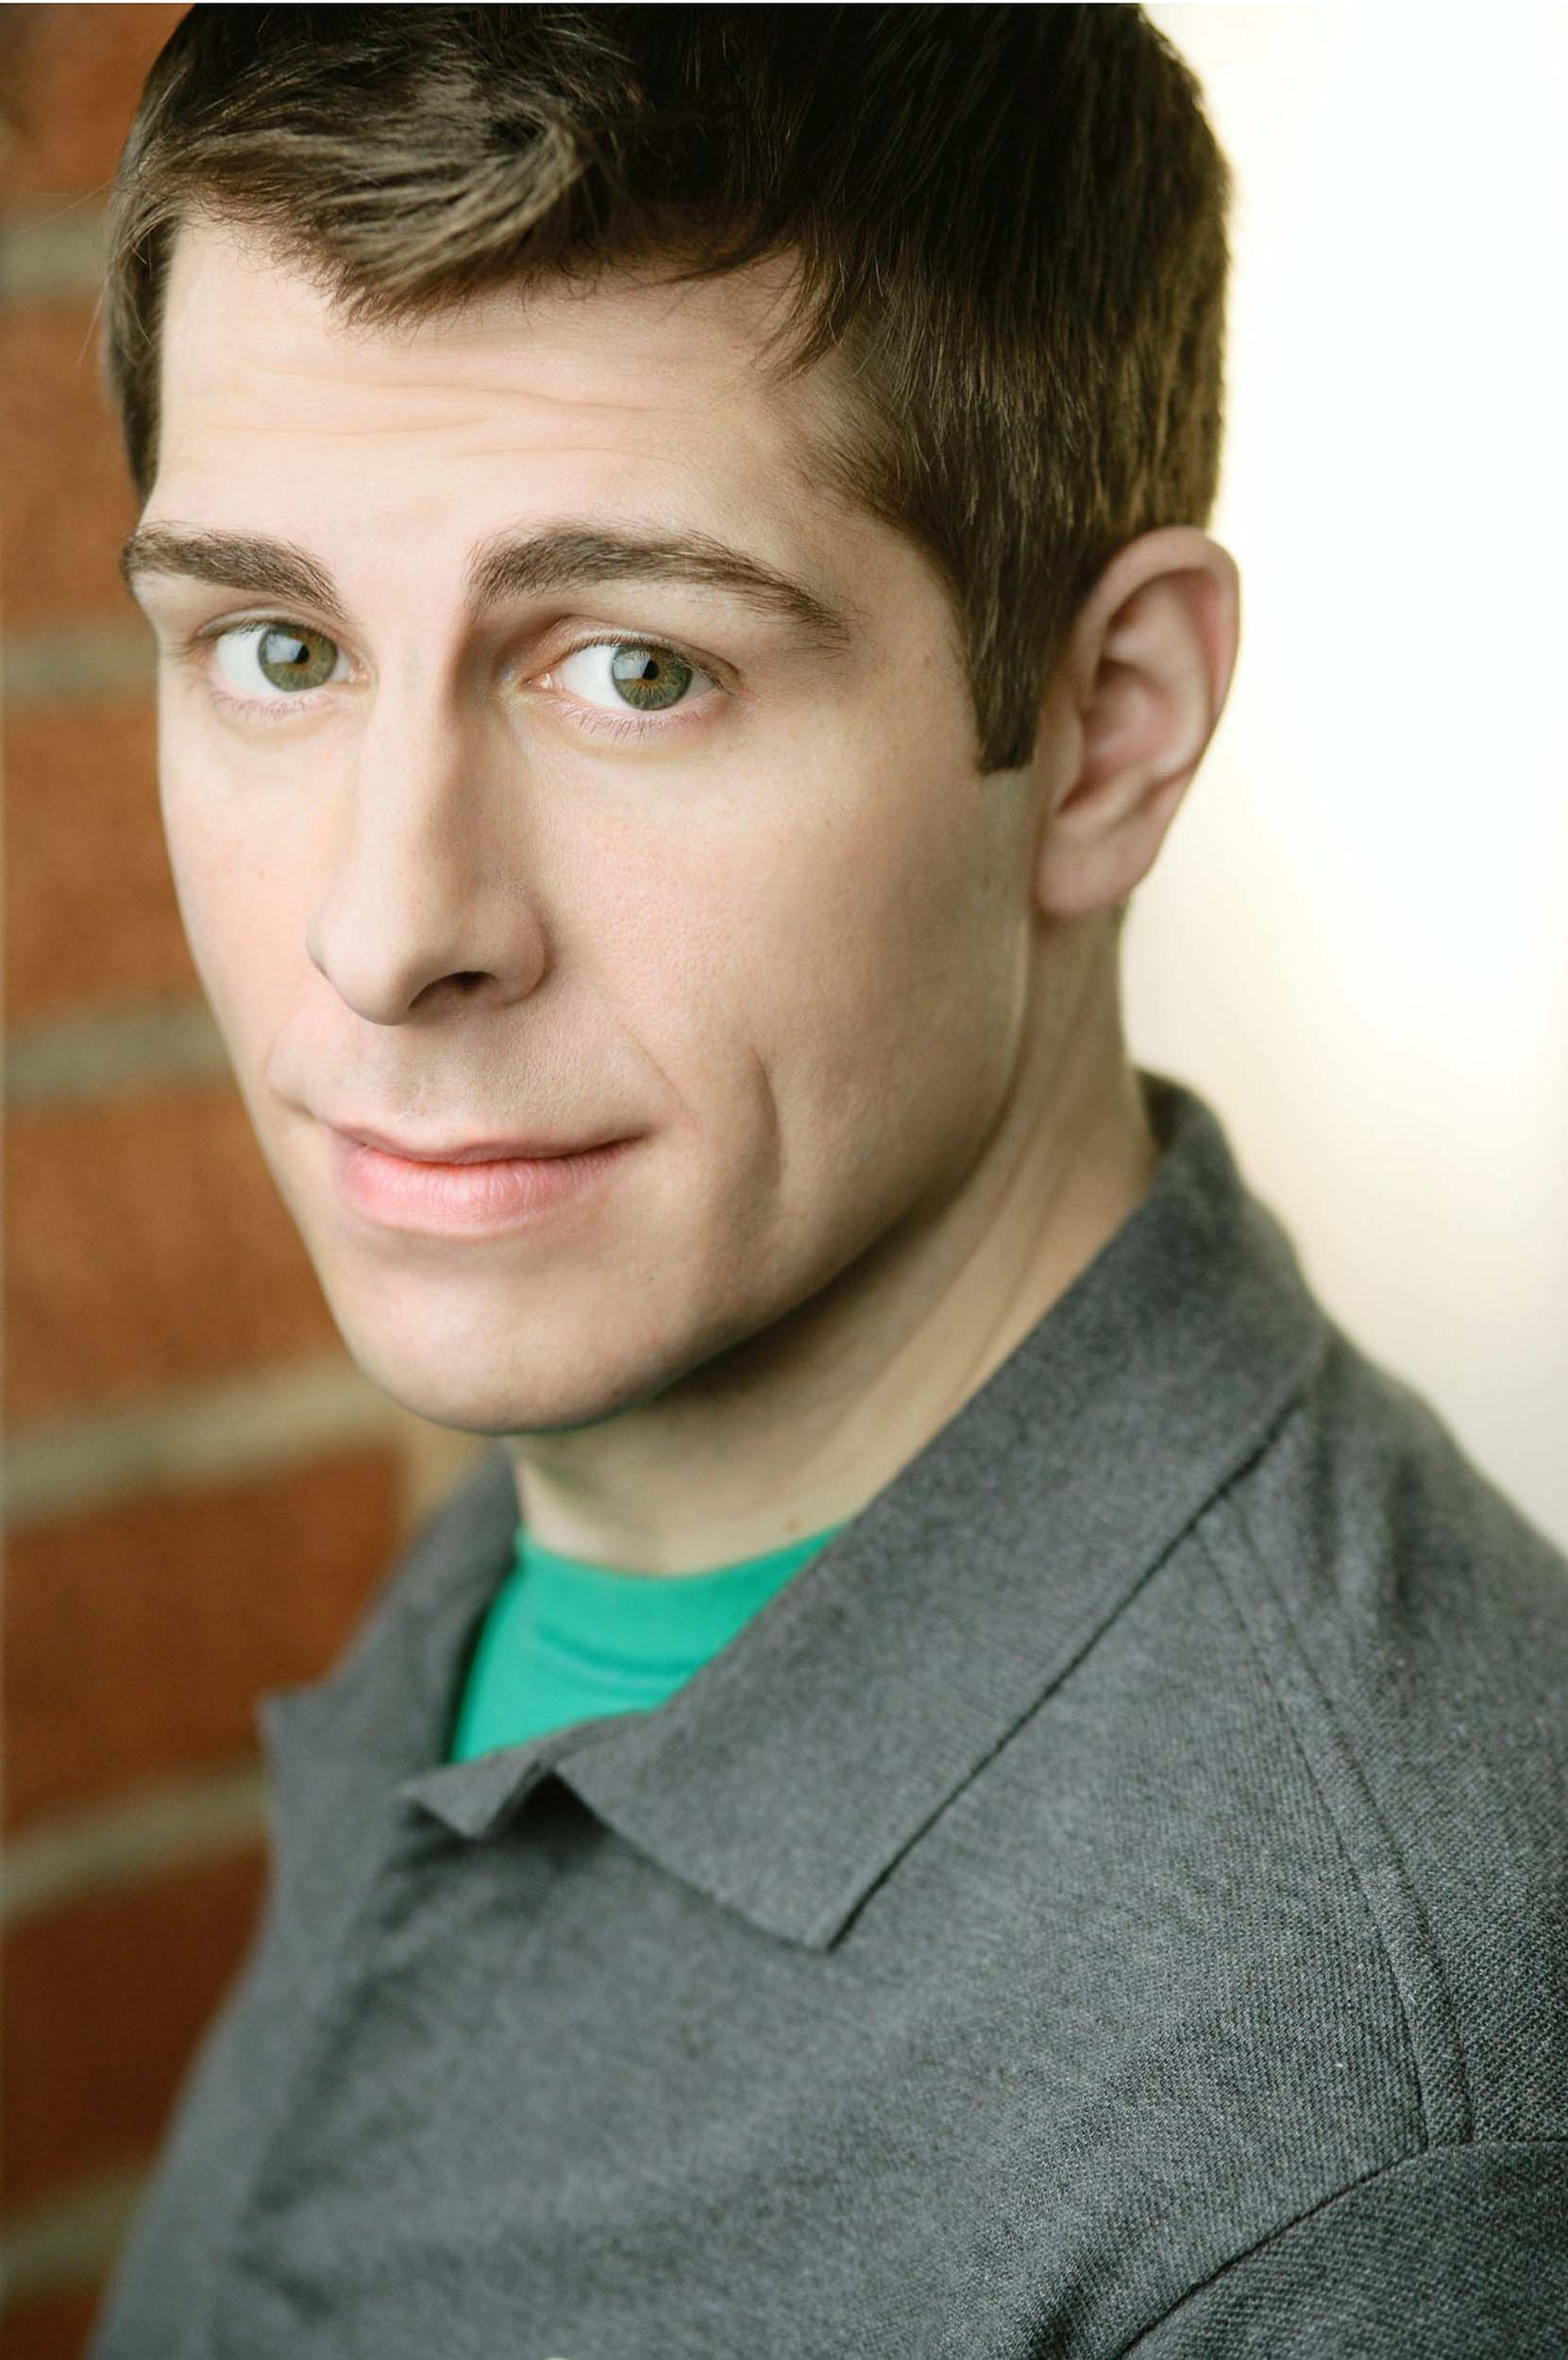 Ryan Reiss, MCS Alumus - Monologue writer and warm-up comic for Late Night with Seth Myers